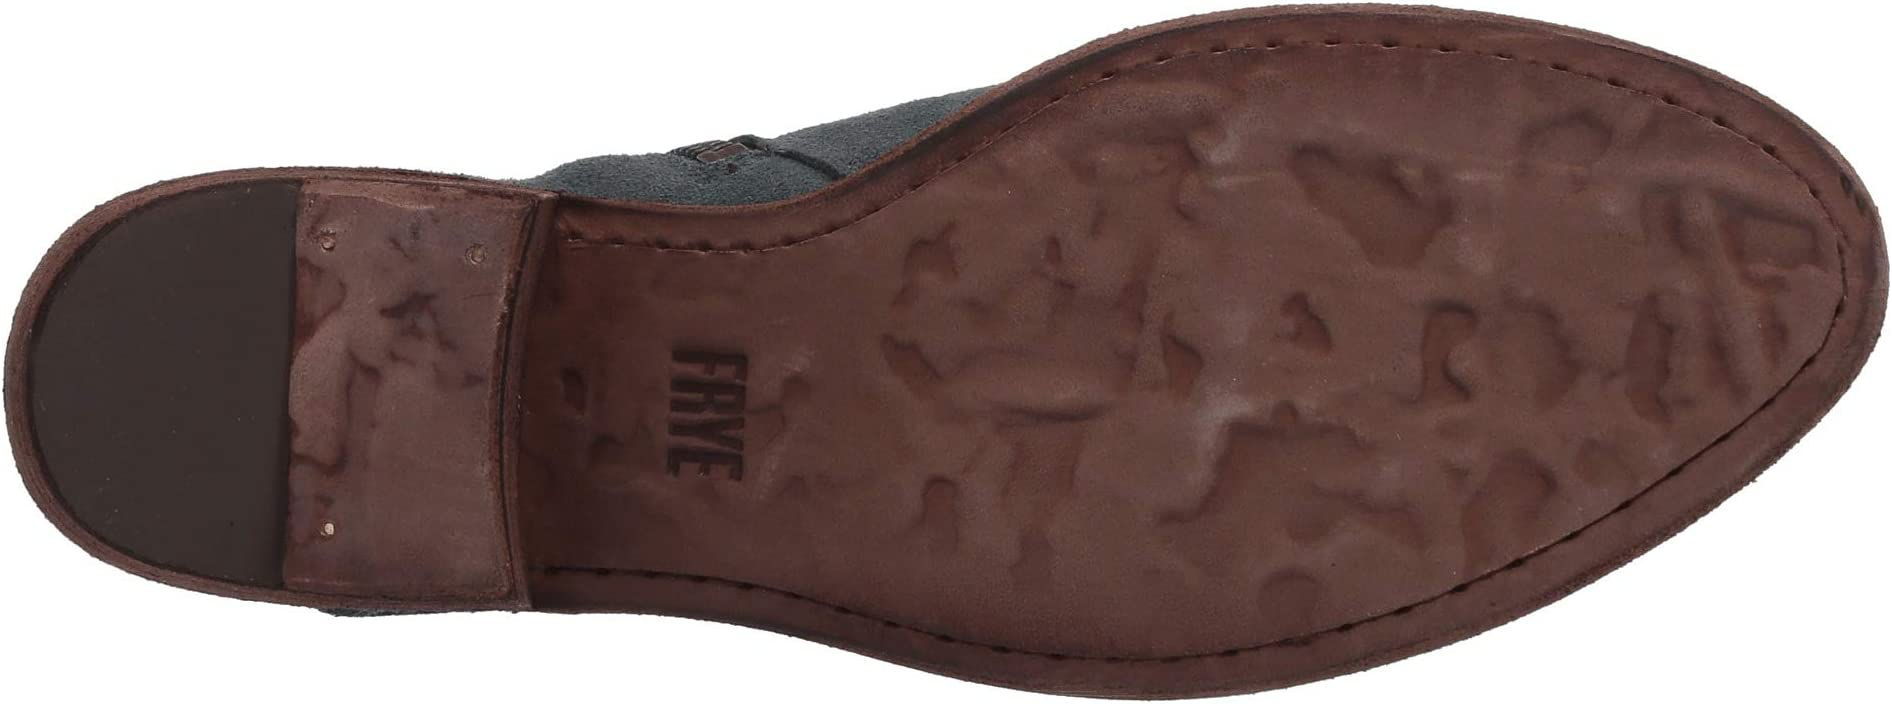 Frye Carson Piping Bootie   Women's shoes   2020 Newest